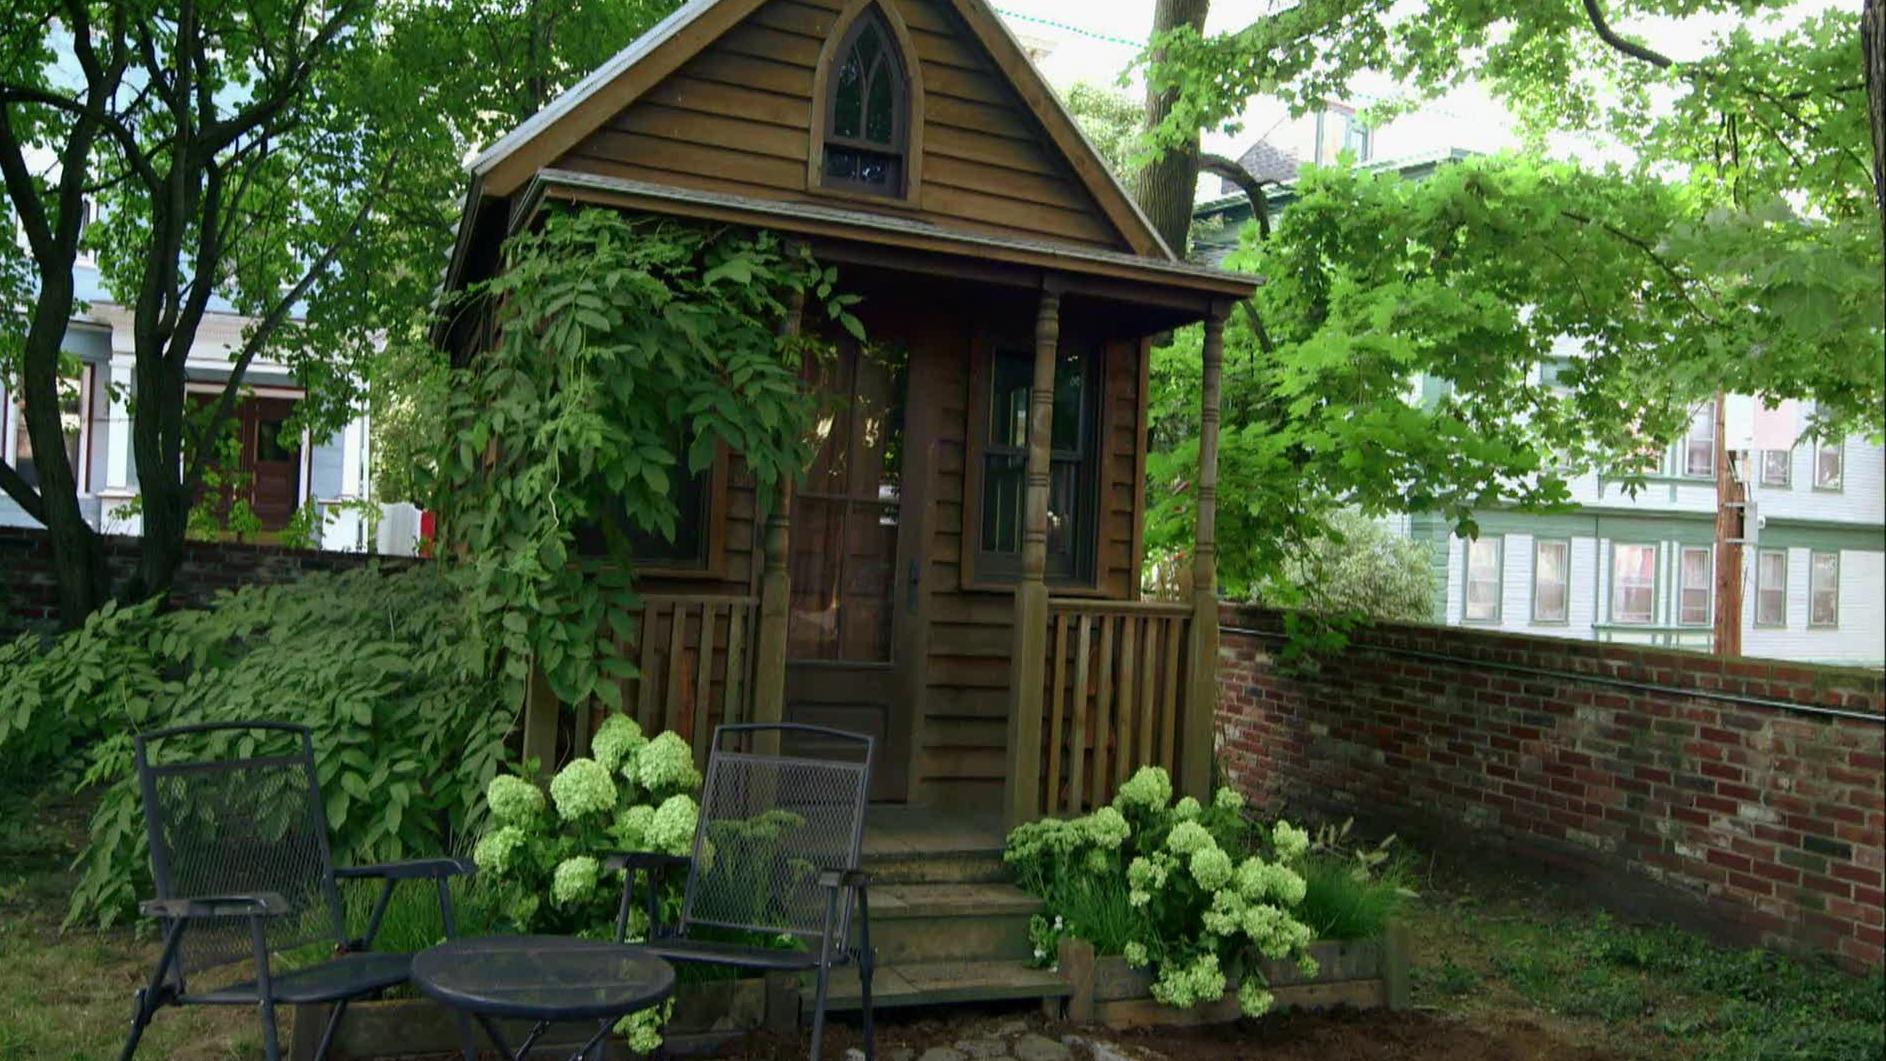 See Inside the Tiny House That Started The Small Space Trend